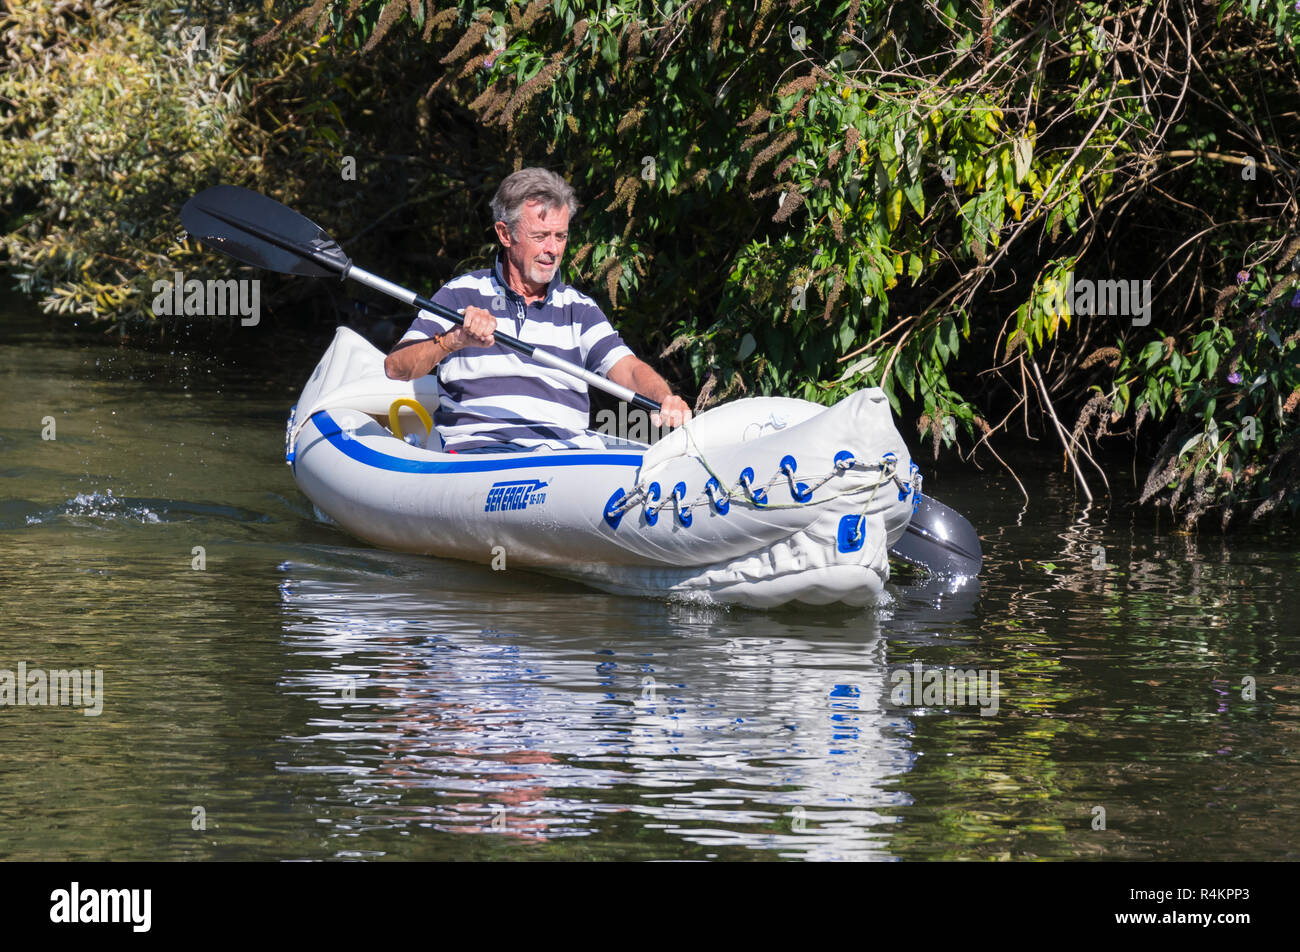 Middle aged man paddling with a double bladed paddle in a Sea Eagle SE-370 inflatable kayak, on a canal in the UK. - Stock Image